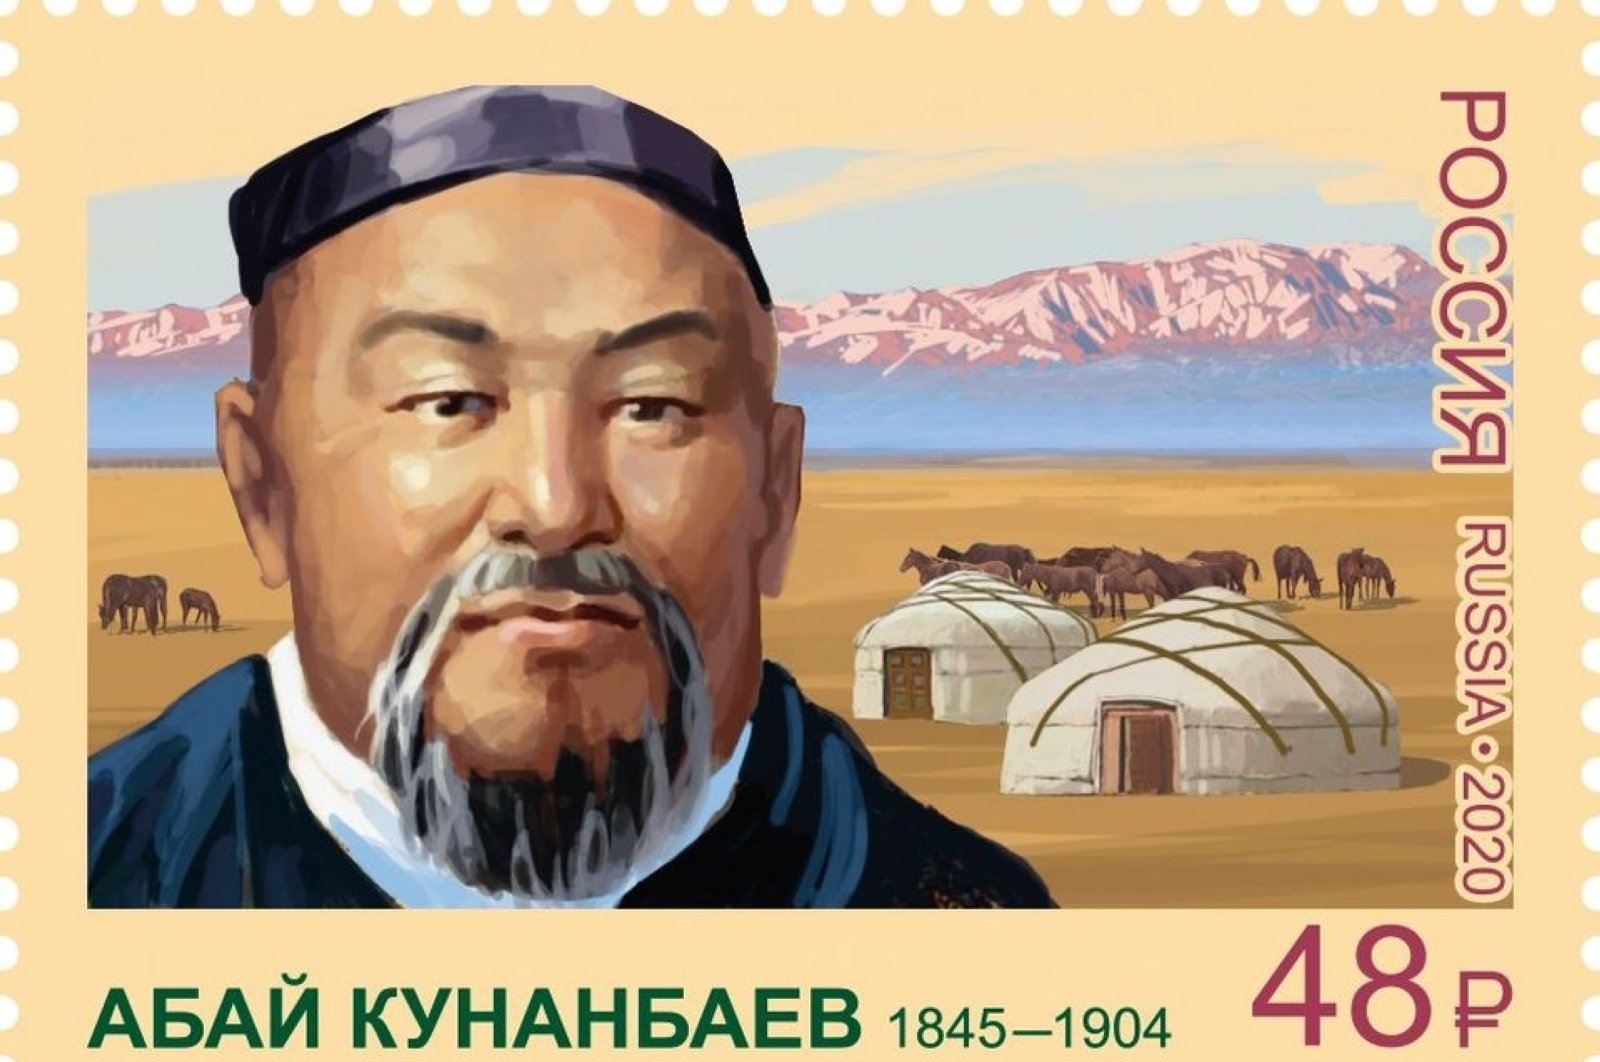 A 2020 Russian postage stamp features Abai Qunanbaiuly.